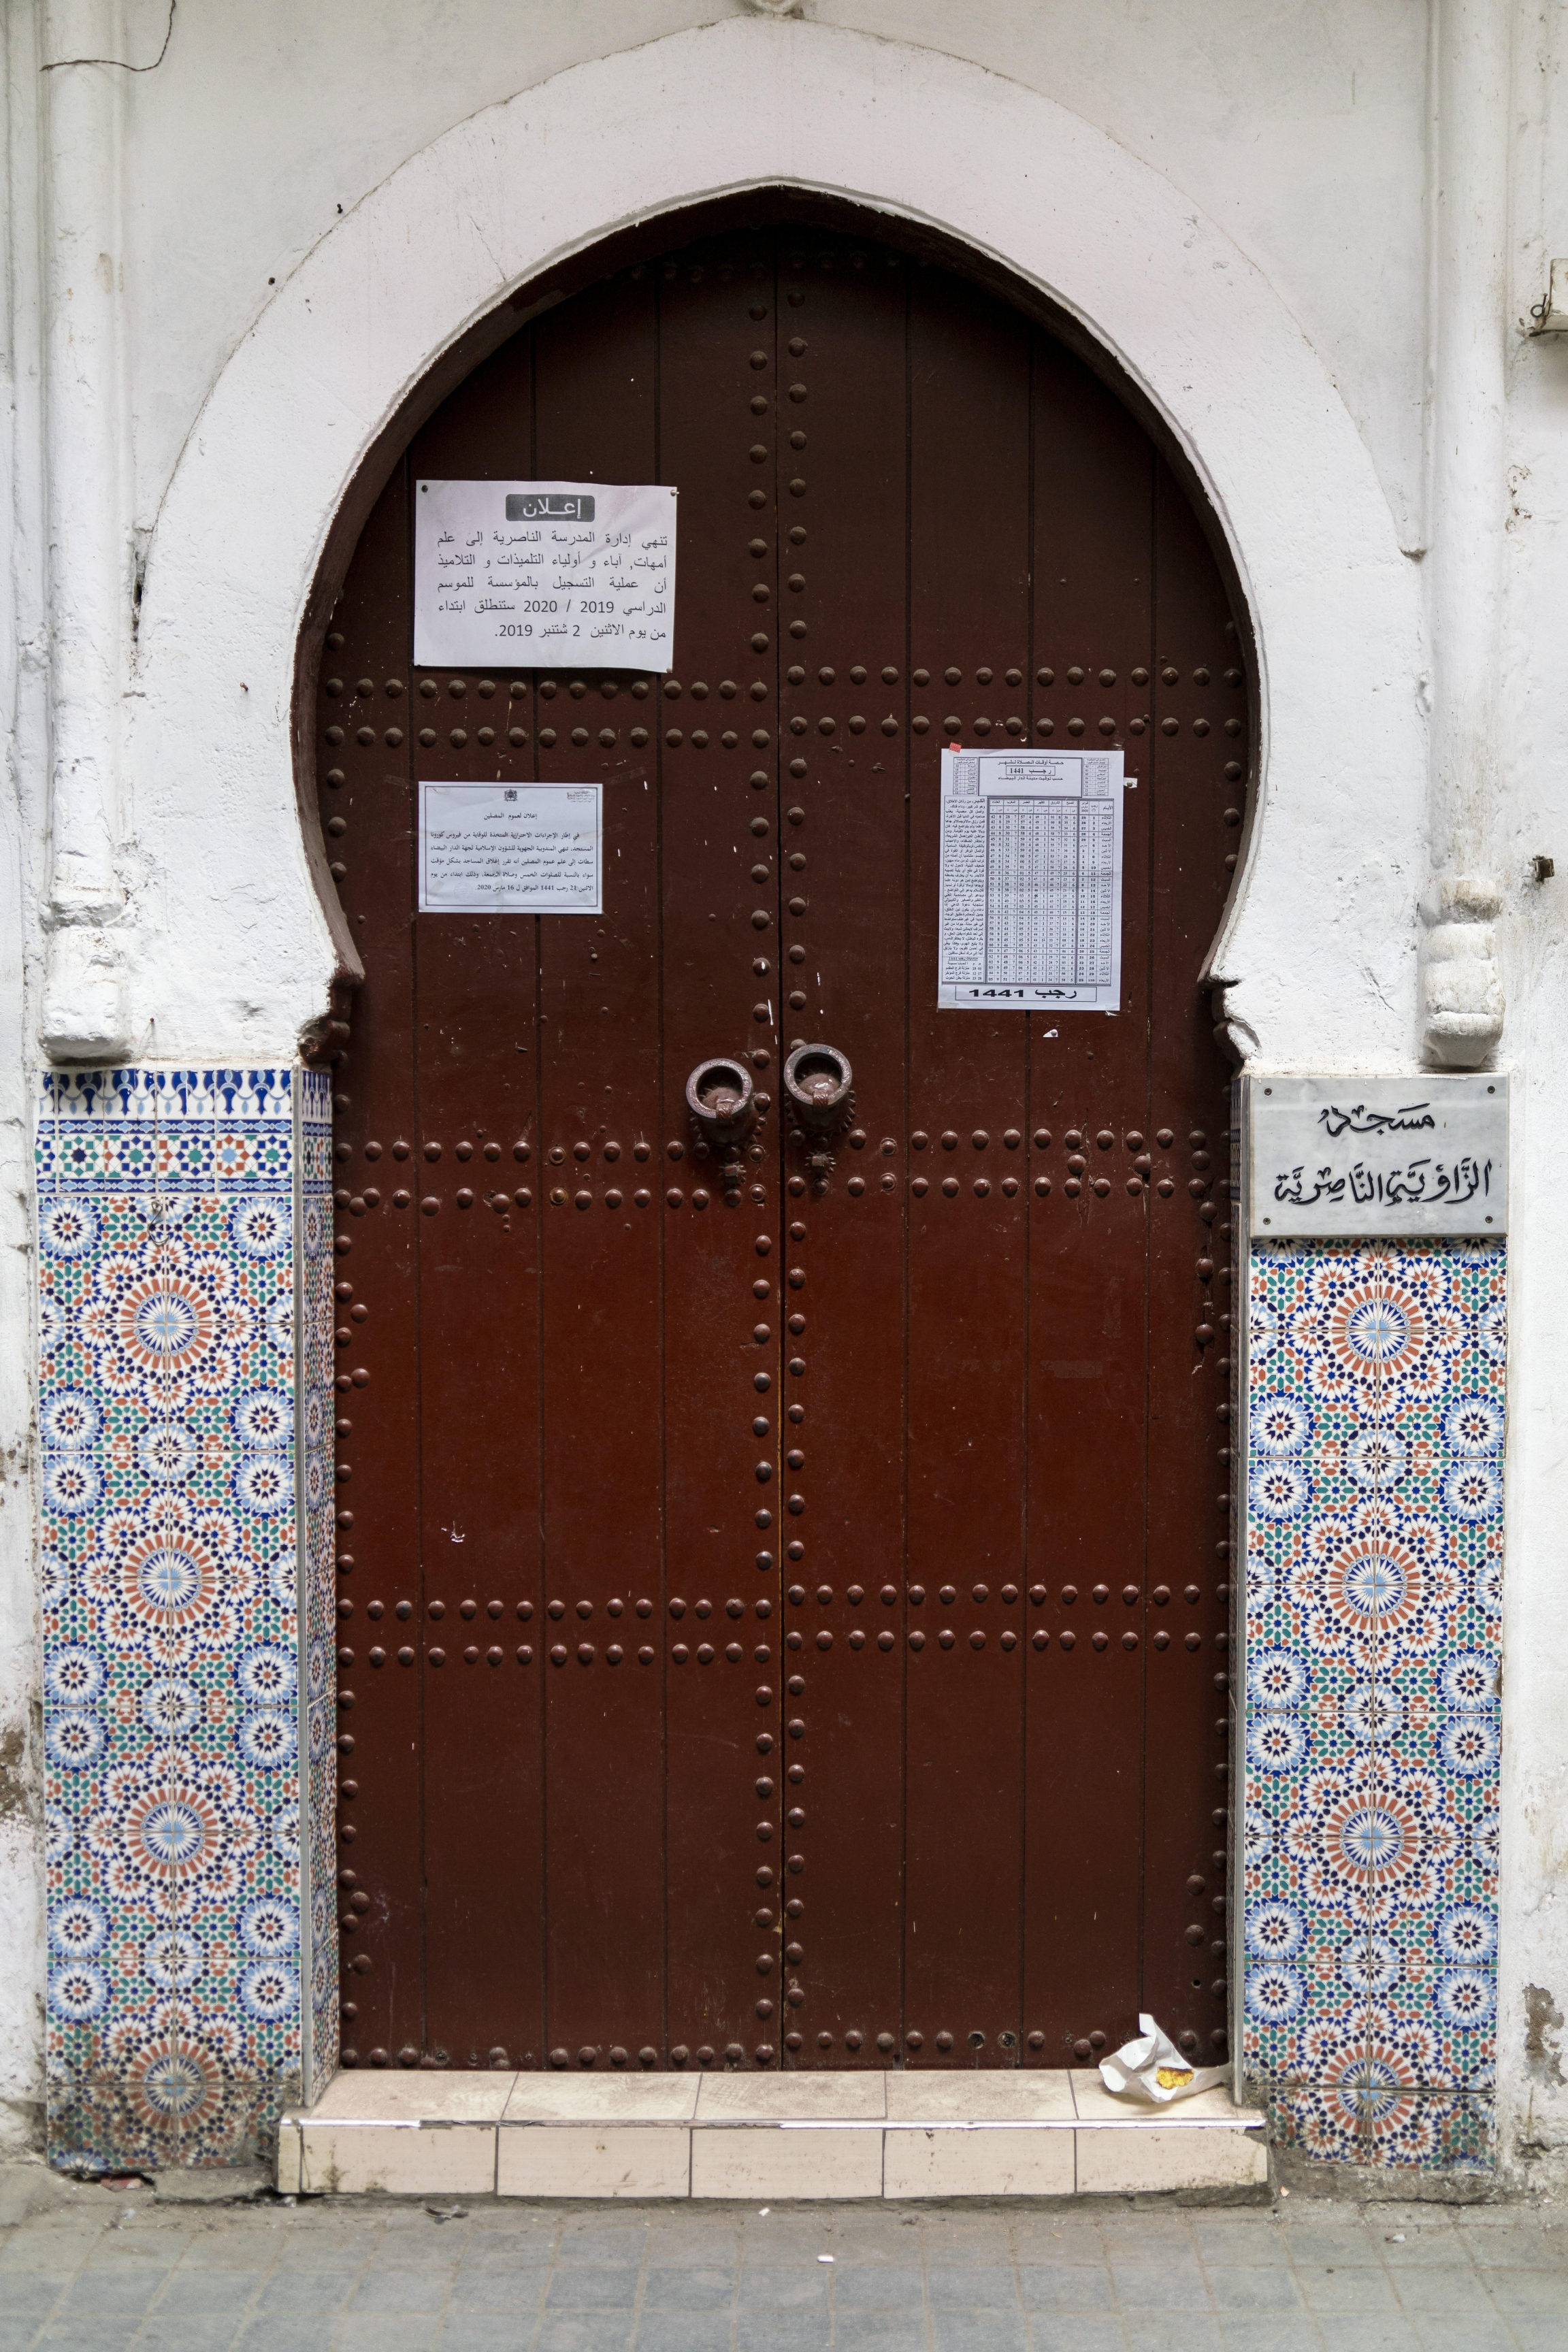 A closed mosque in the medina of Casablanca.